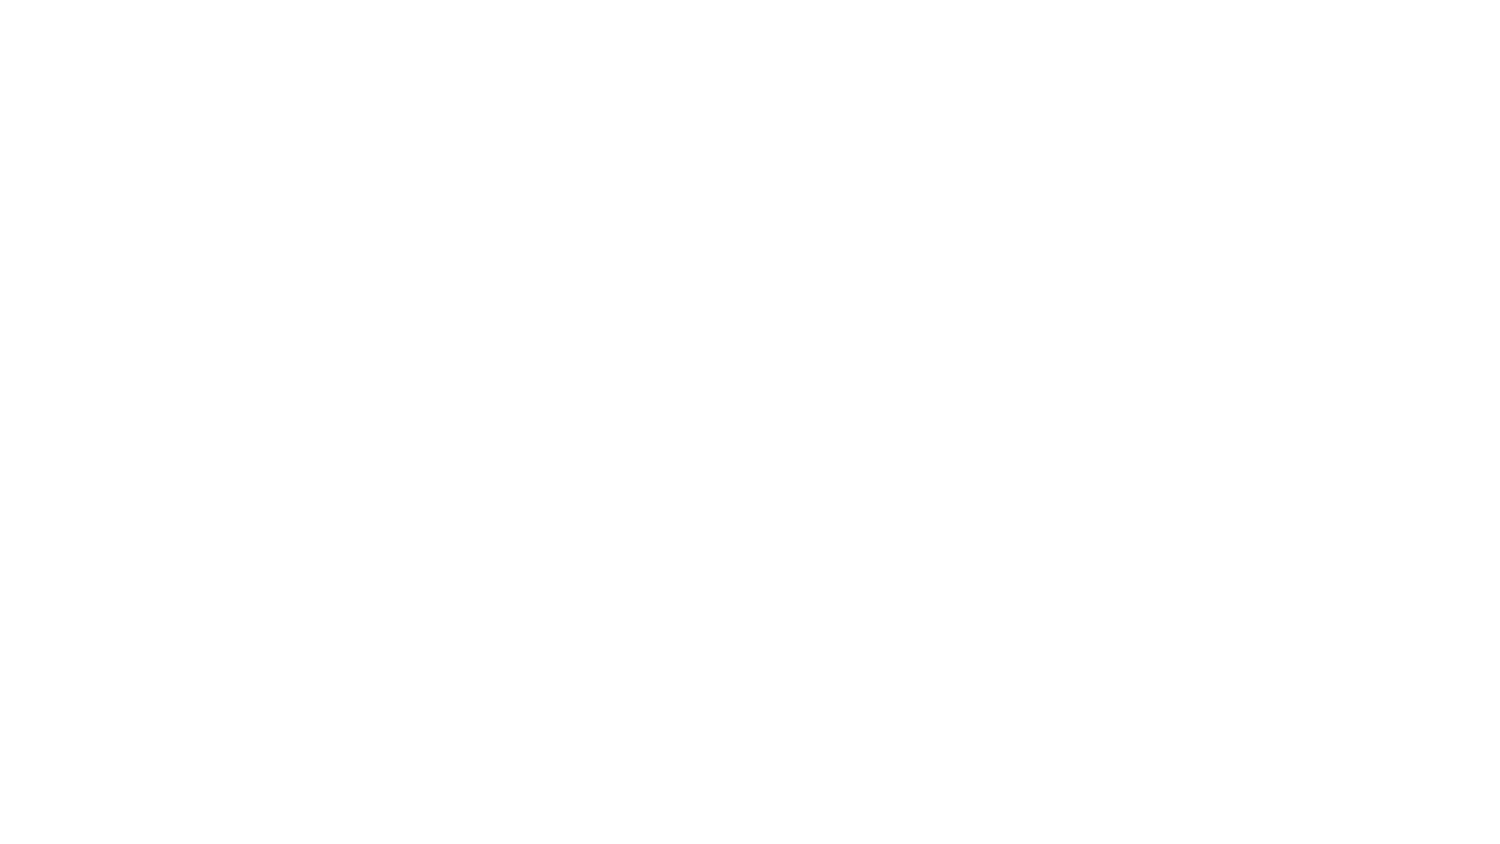 The Fairies Want Me Dead